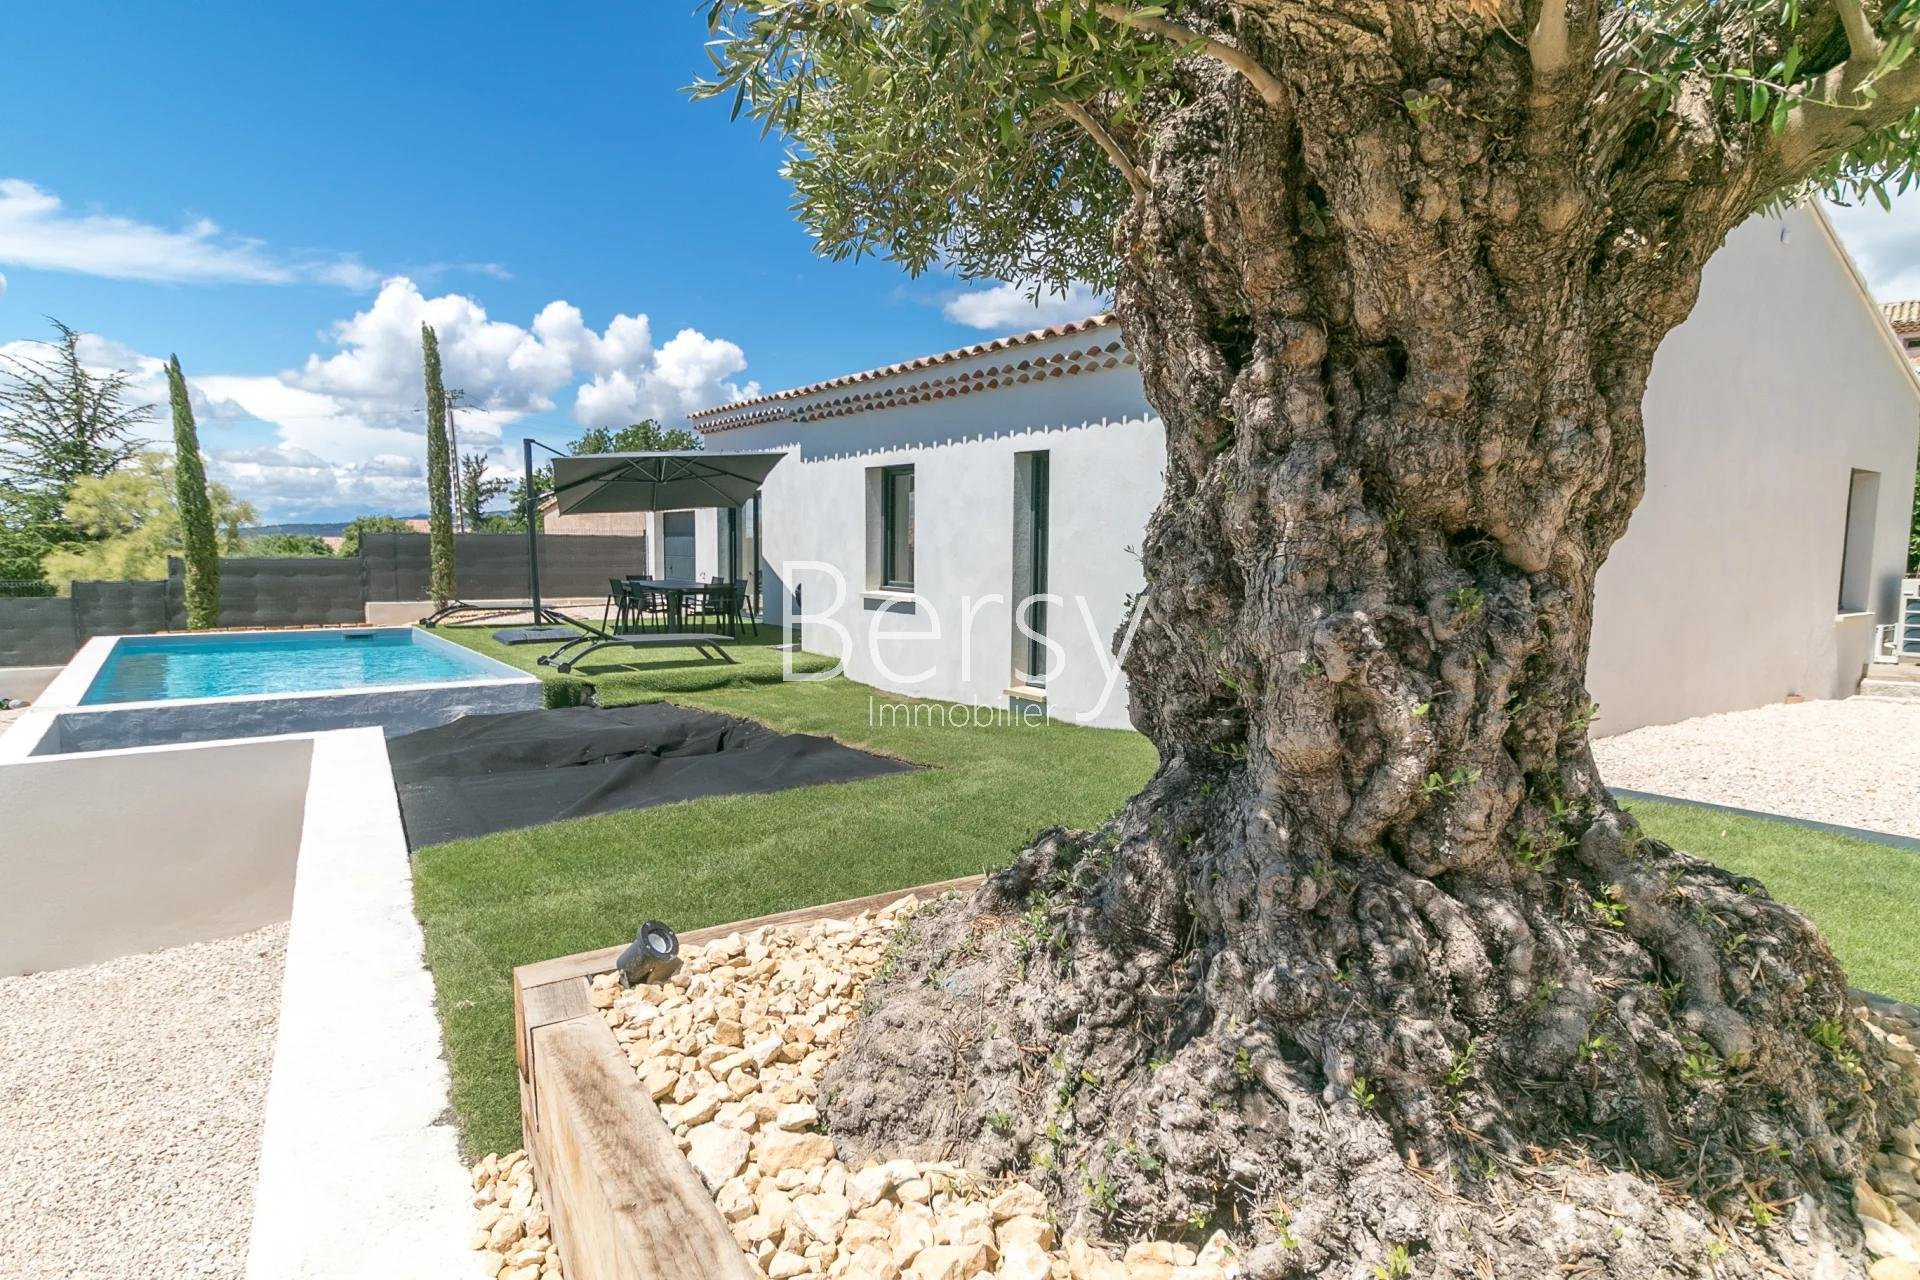 Contemporary house with swimming pool, at the foot of Mont Ventoux in Bedoin